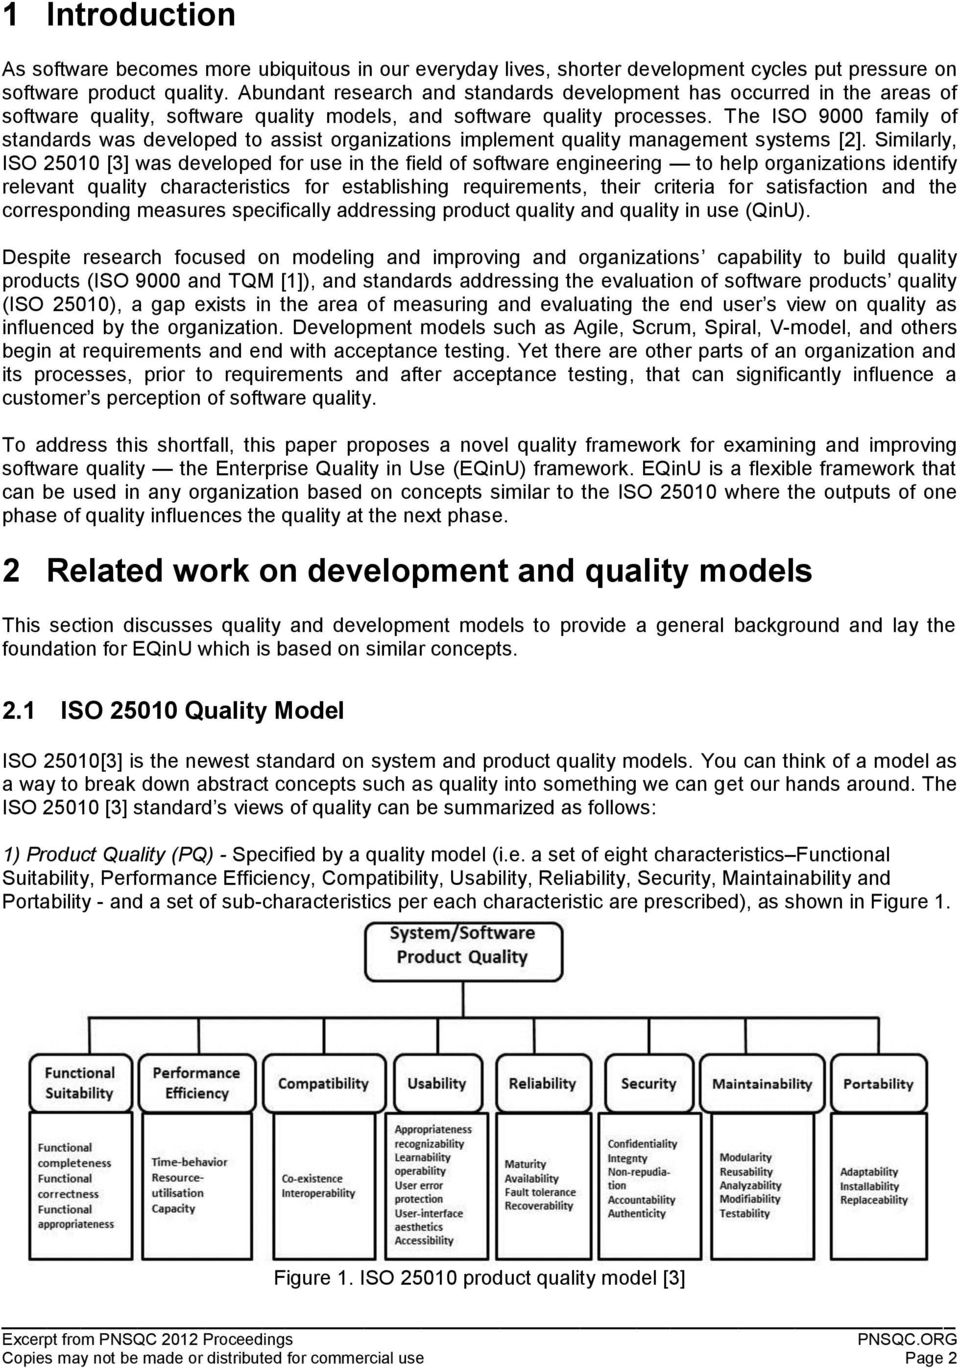 The ISO 9000 family of standards was developed to assist organizations implement quality management systems [2].